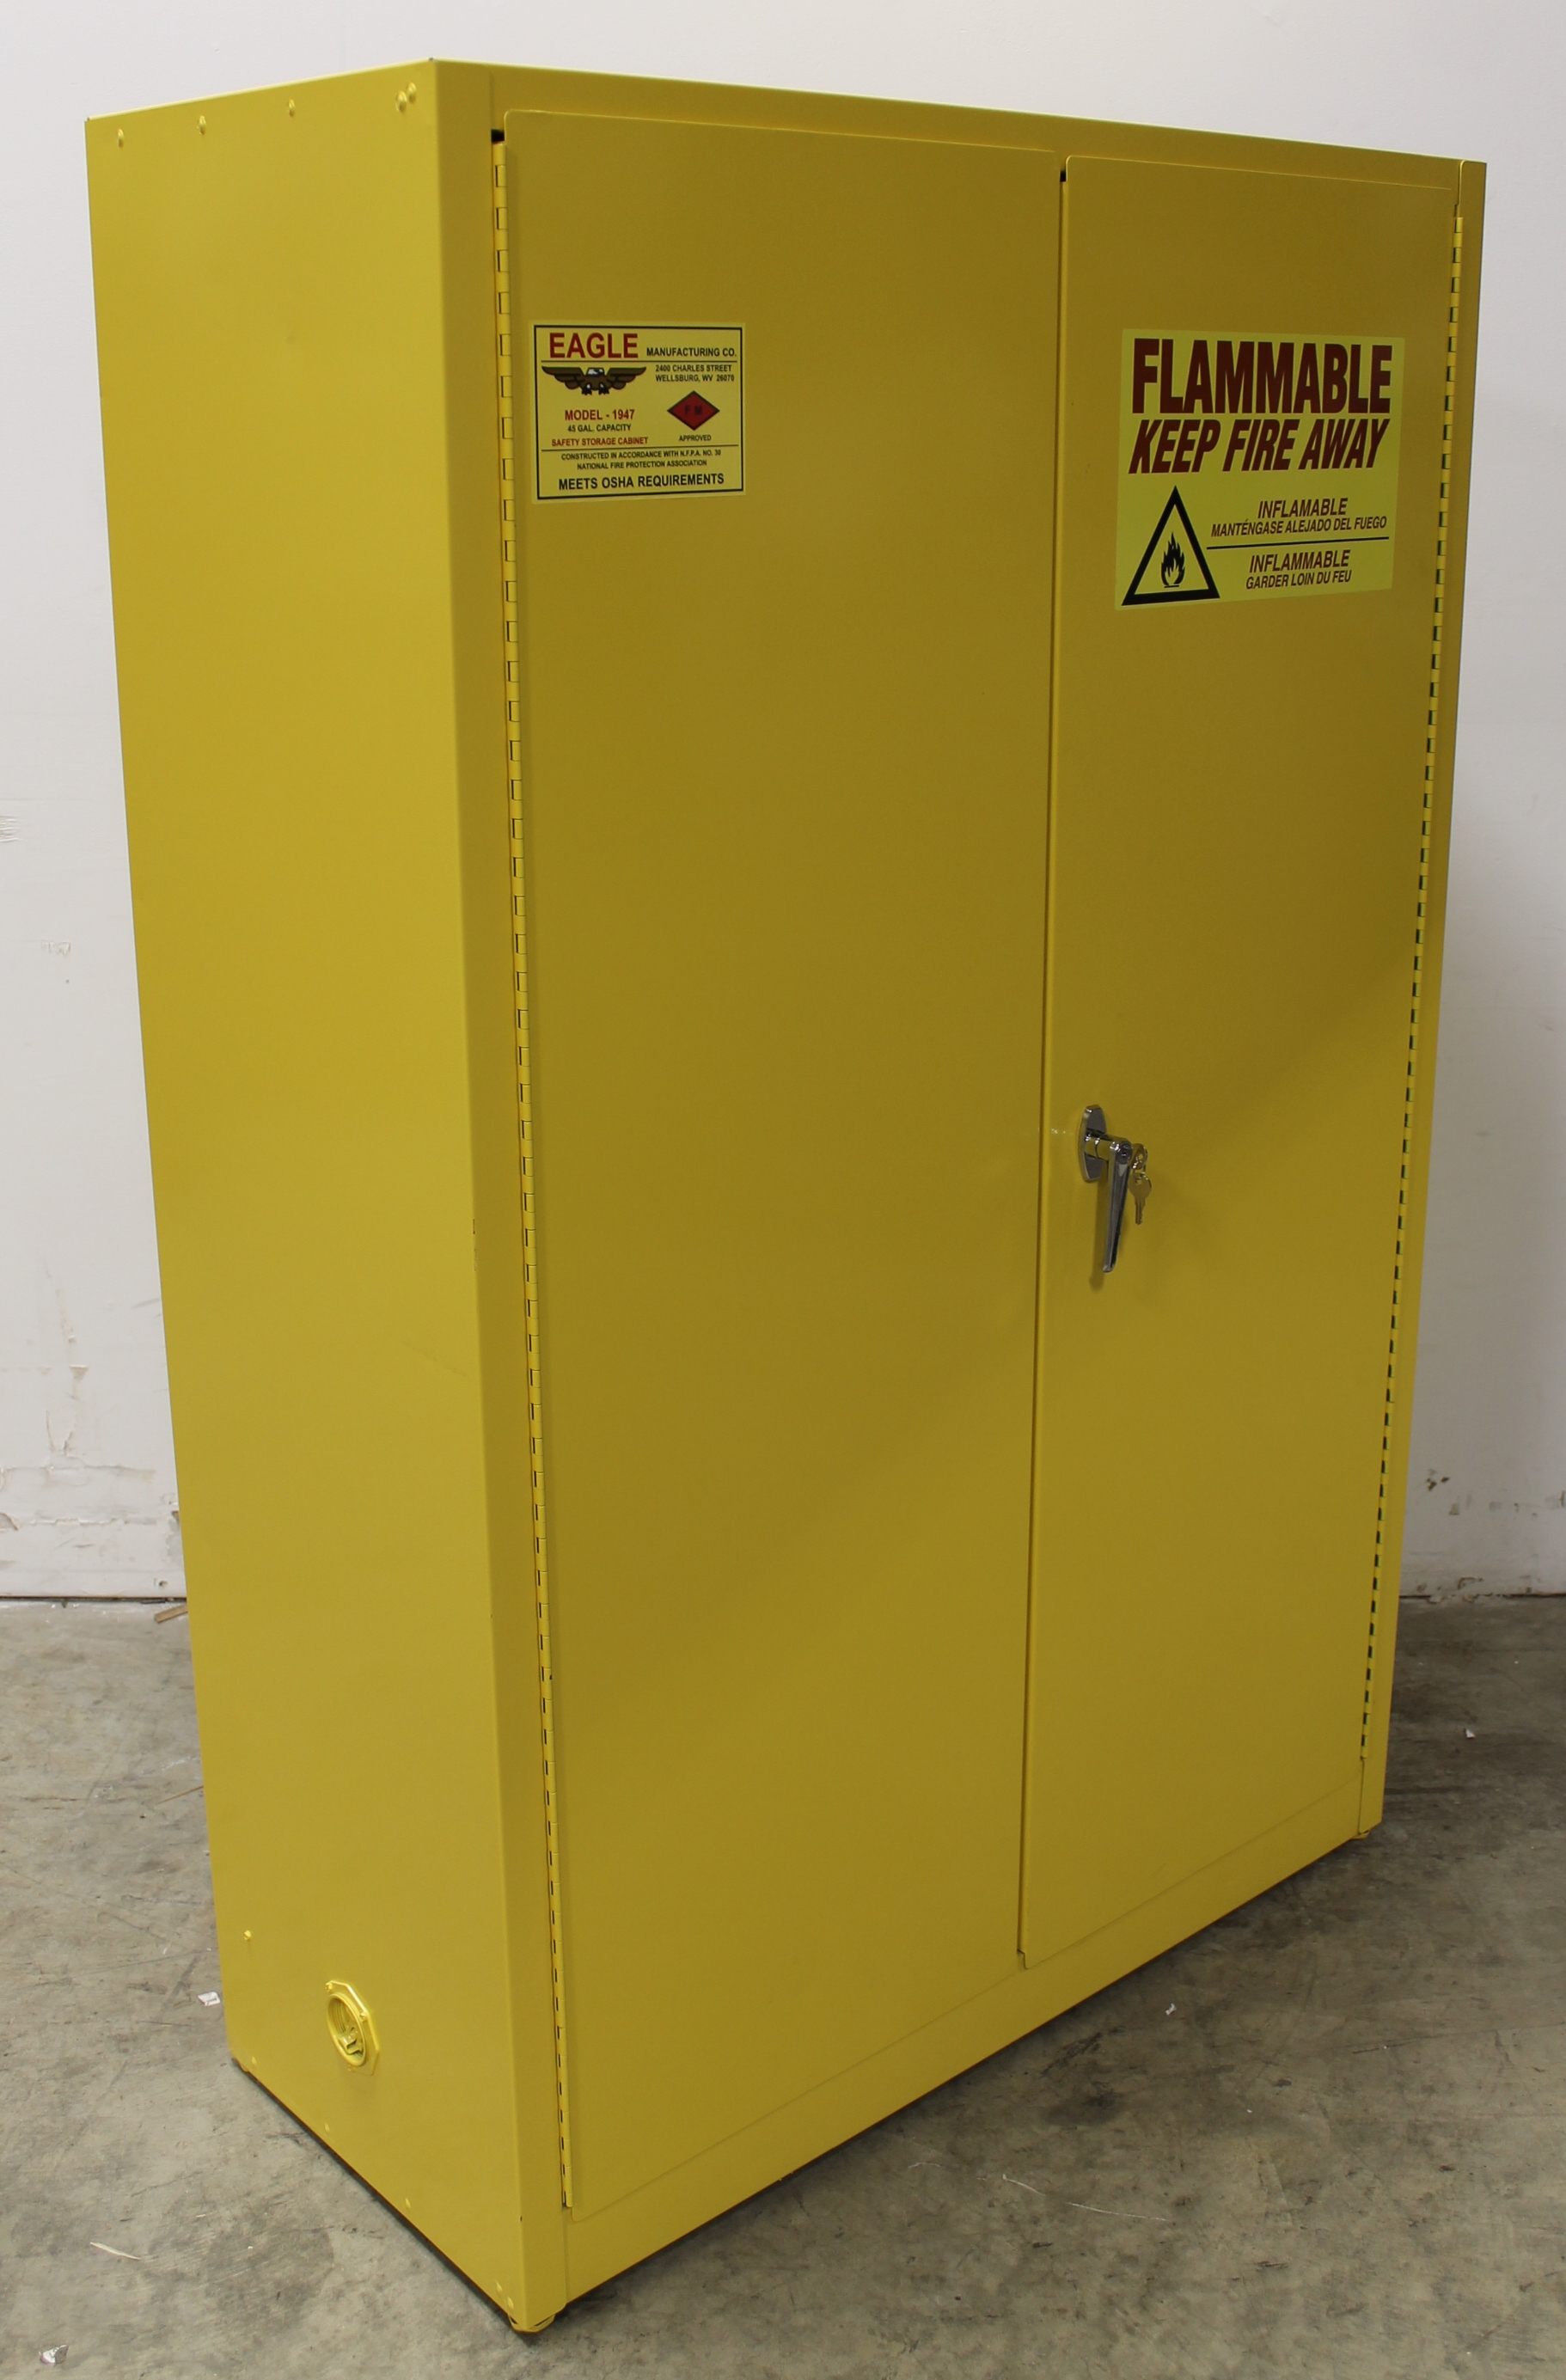 eagle model 45 gallon flammable safety storage cabinet image